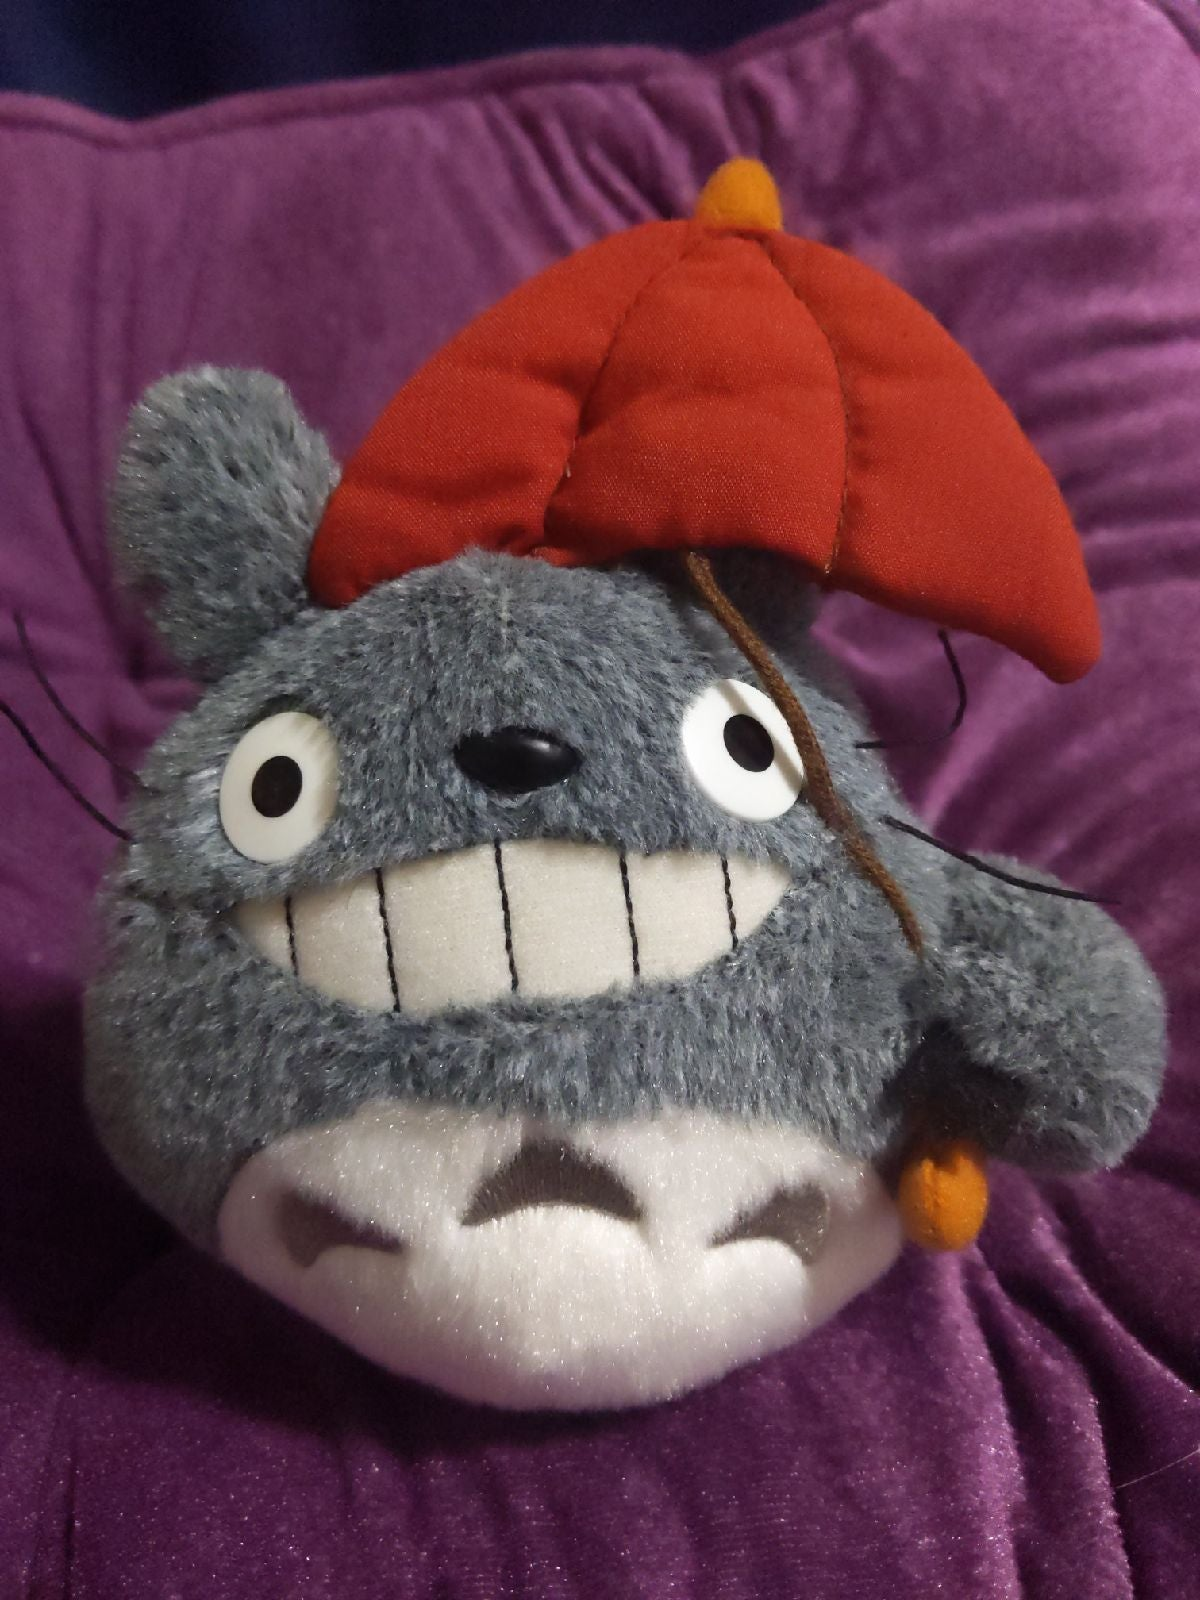 Official My Neighbor Totoro Plush